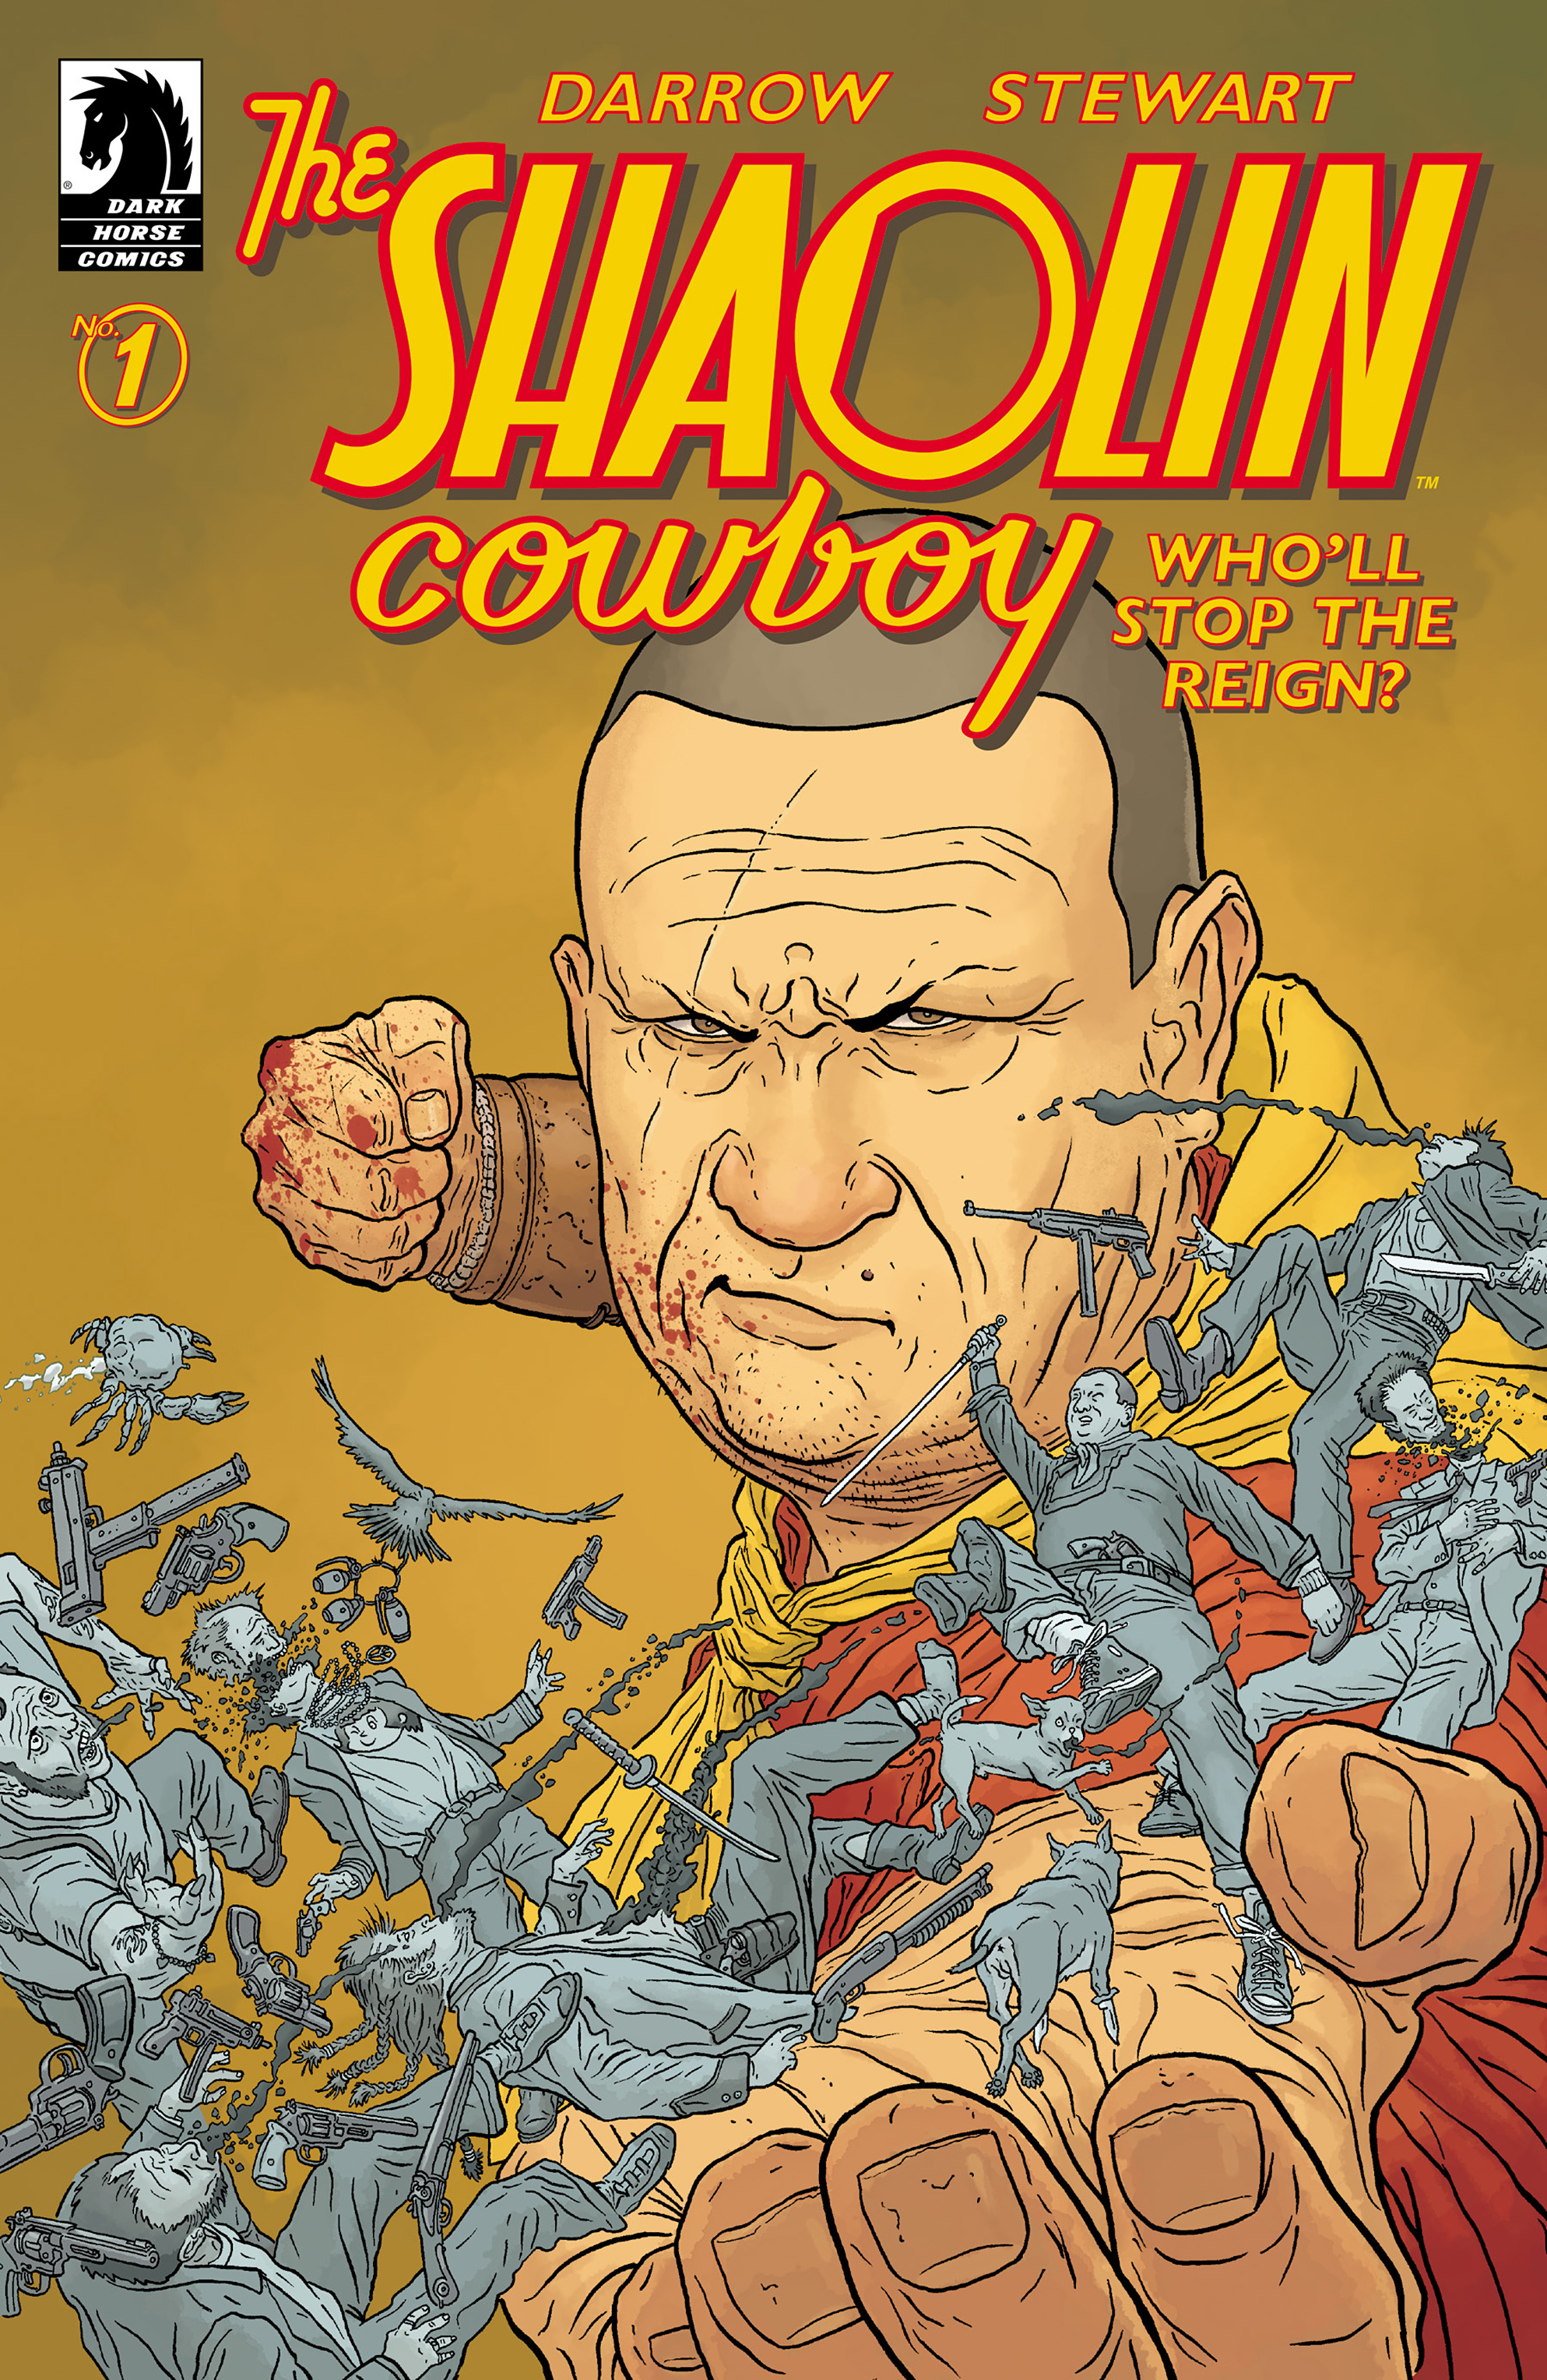 The Shaolin Cowboy: Wholl Stop the Reign? 1 Page 1